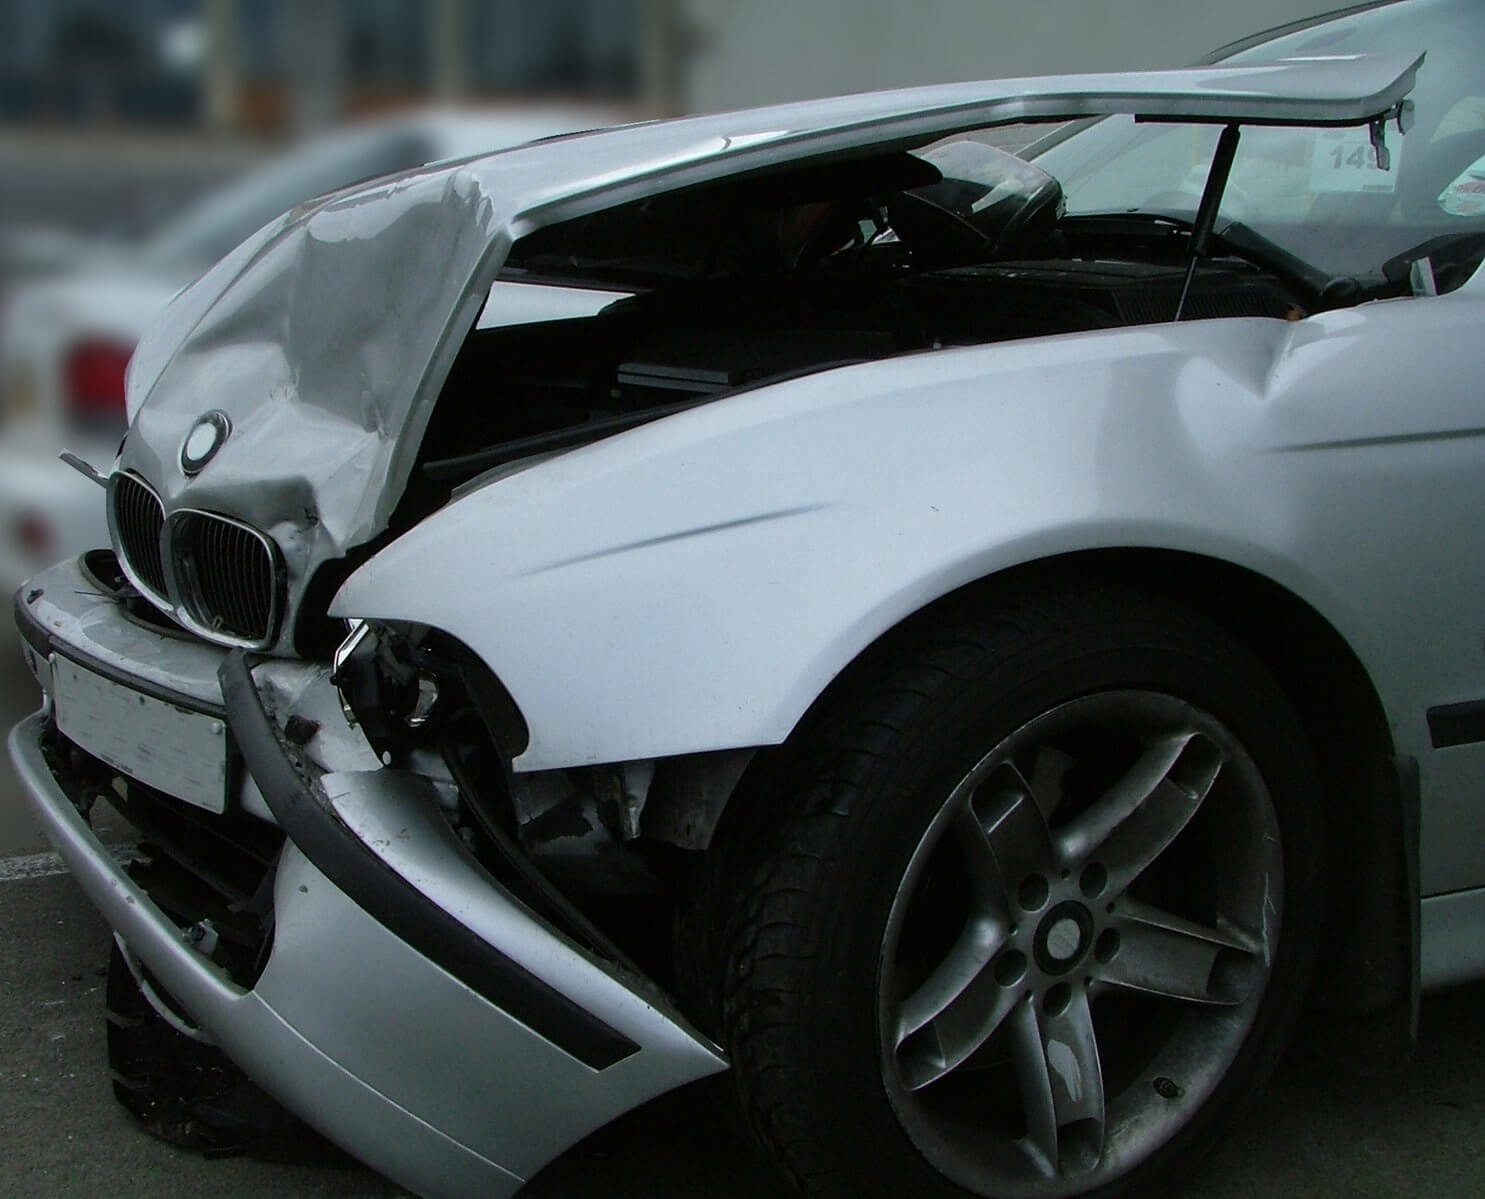 Focus on Car Accidents